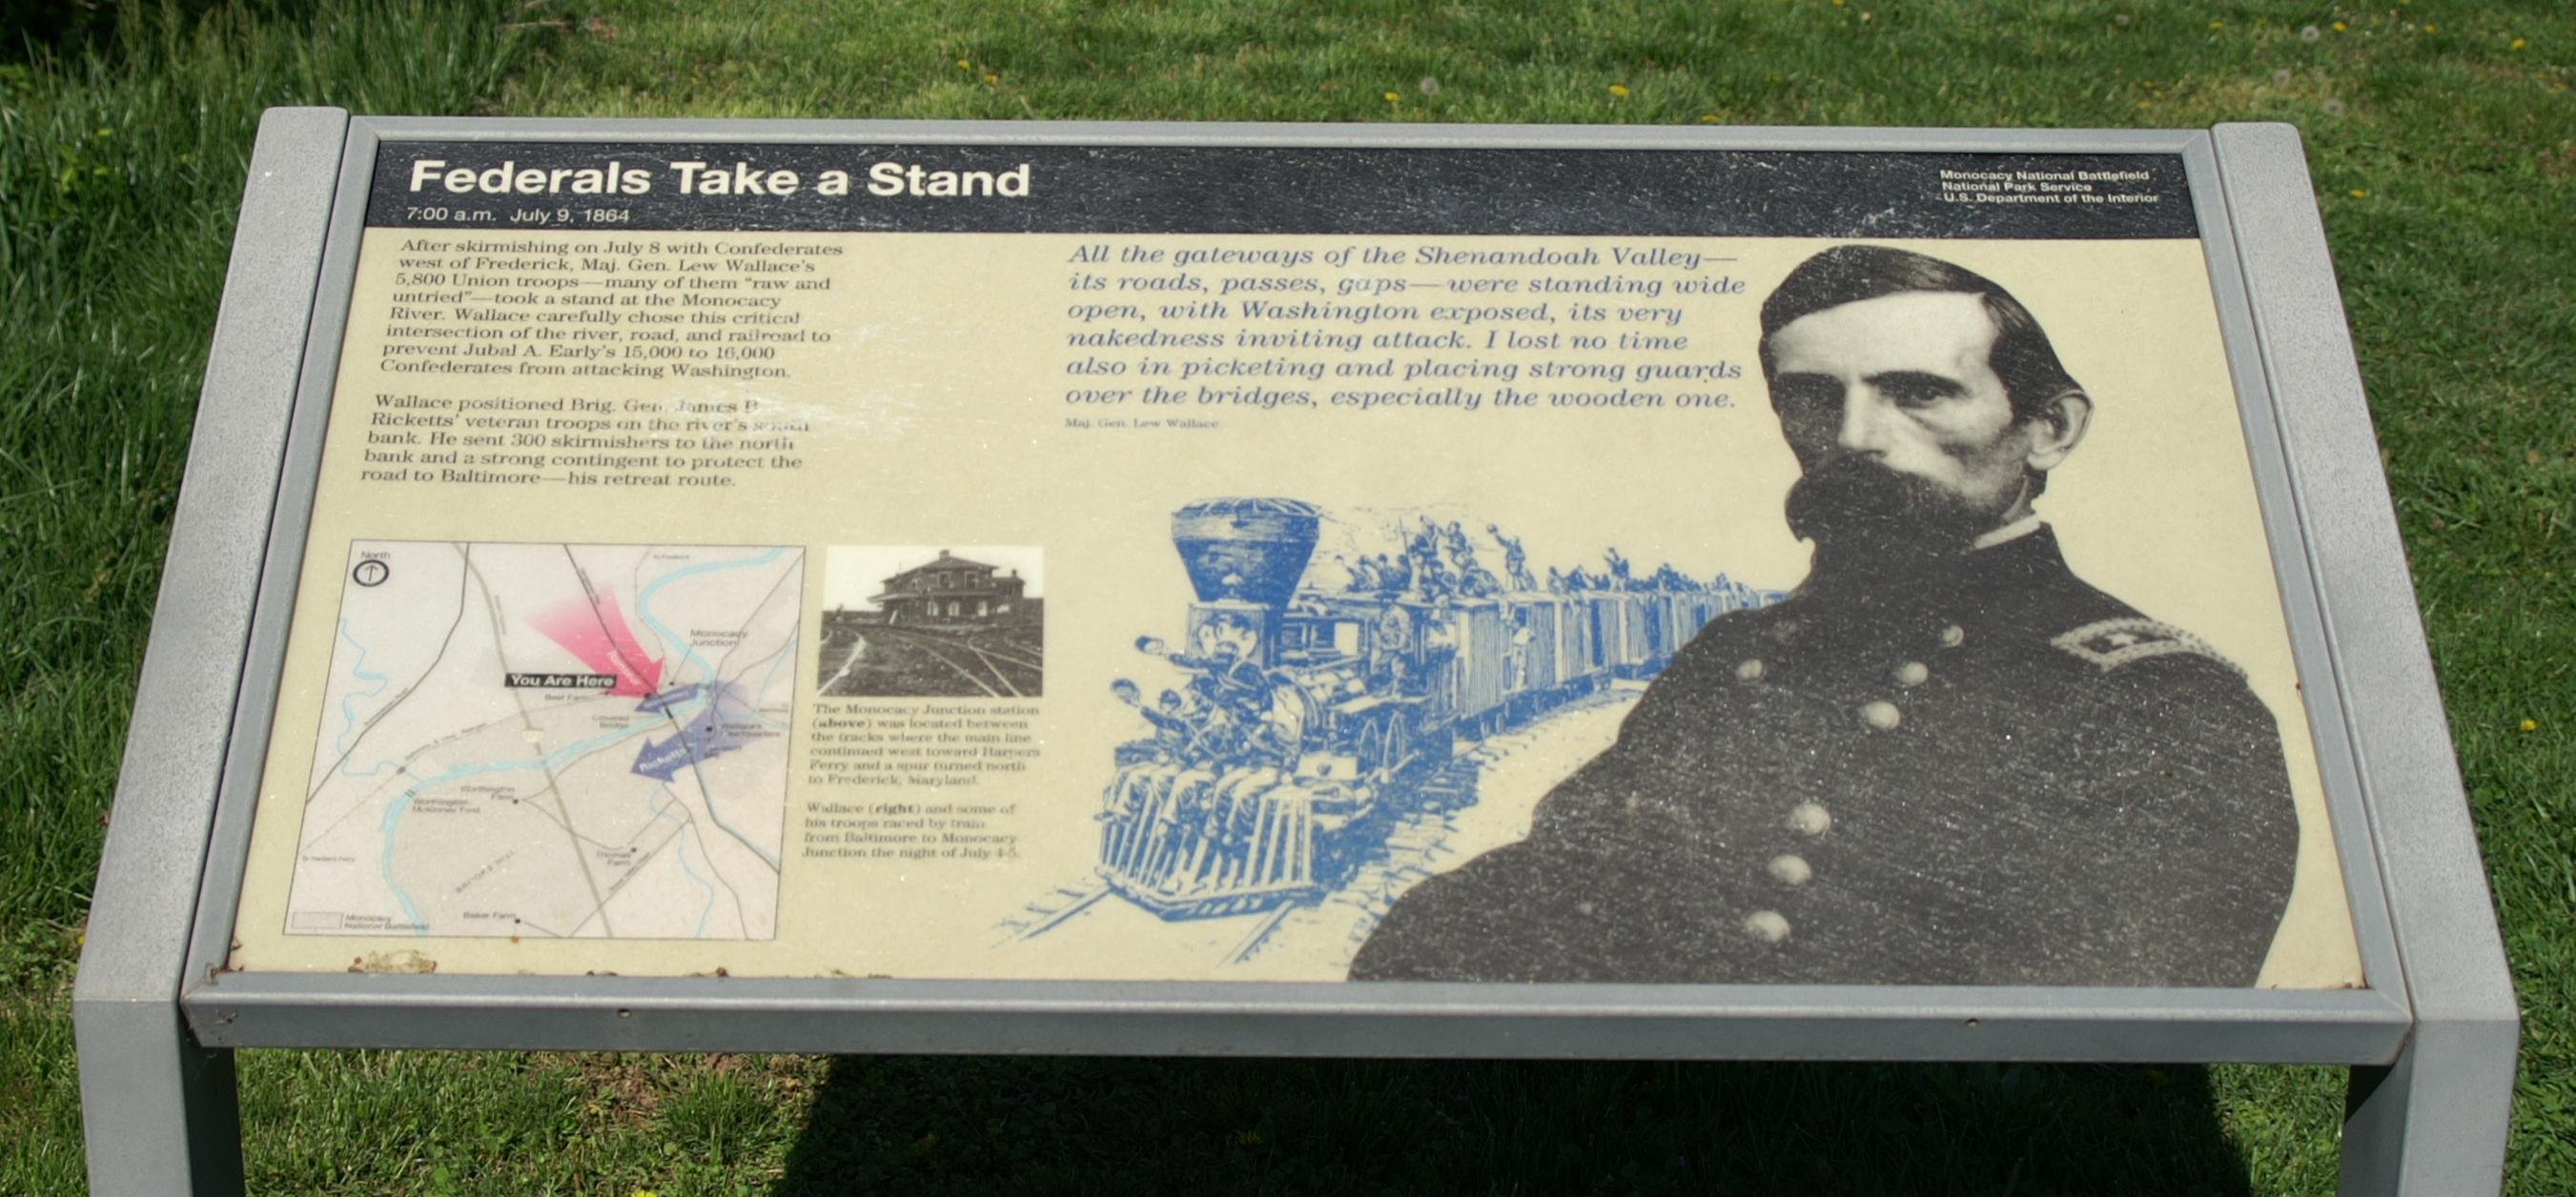 informative sign about the Battle to save Washington, D.C.